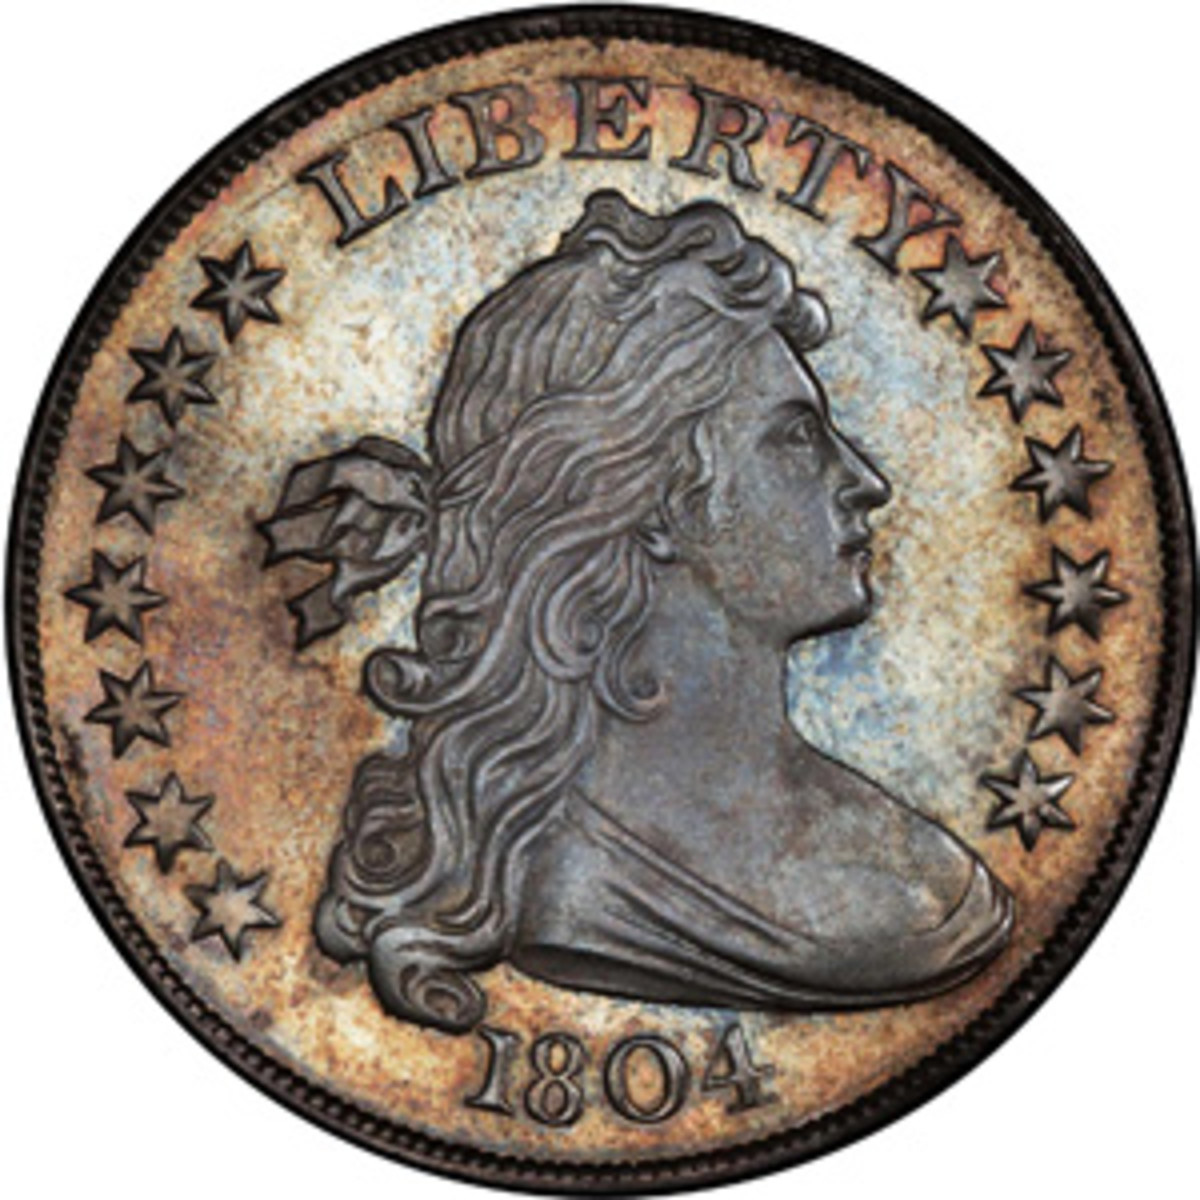 1804 dollar, courtesy Stack's Bowers Galleries.